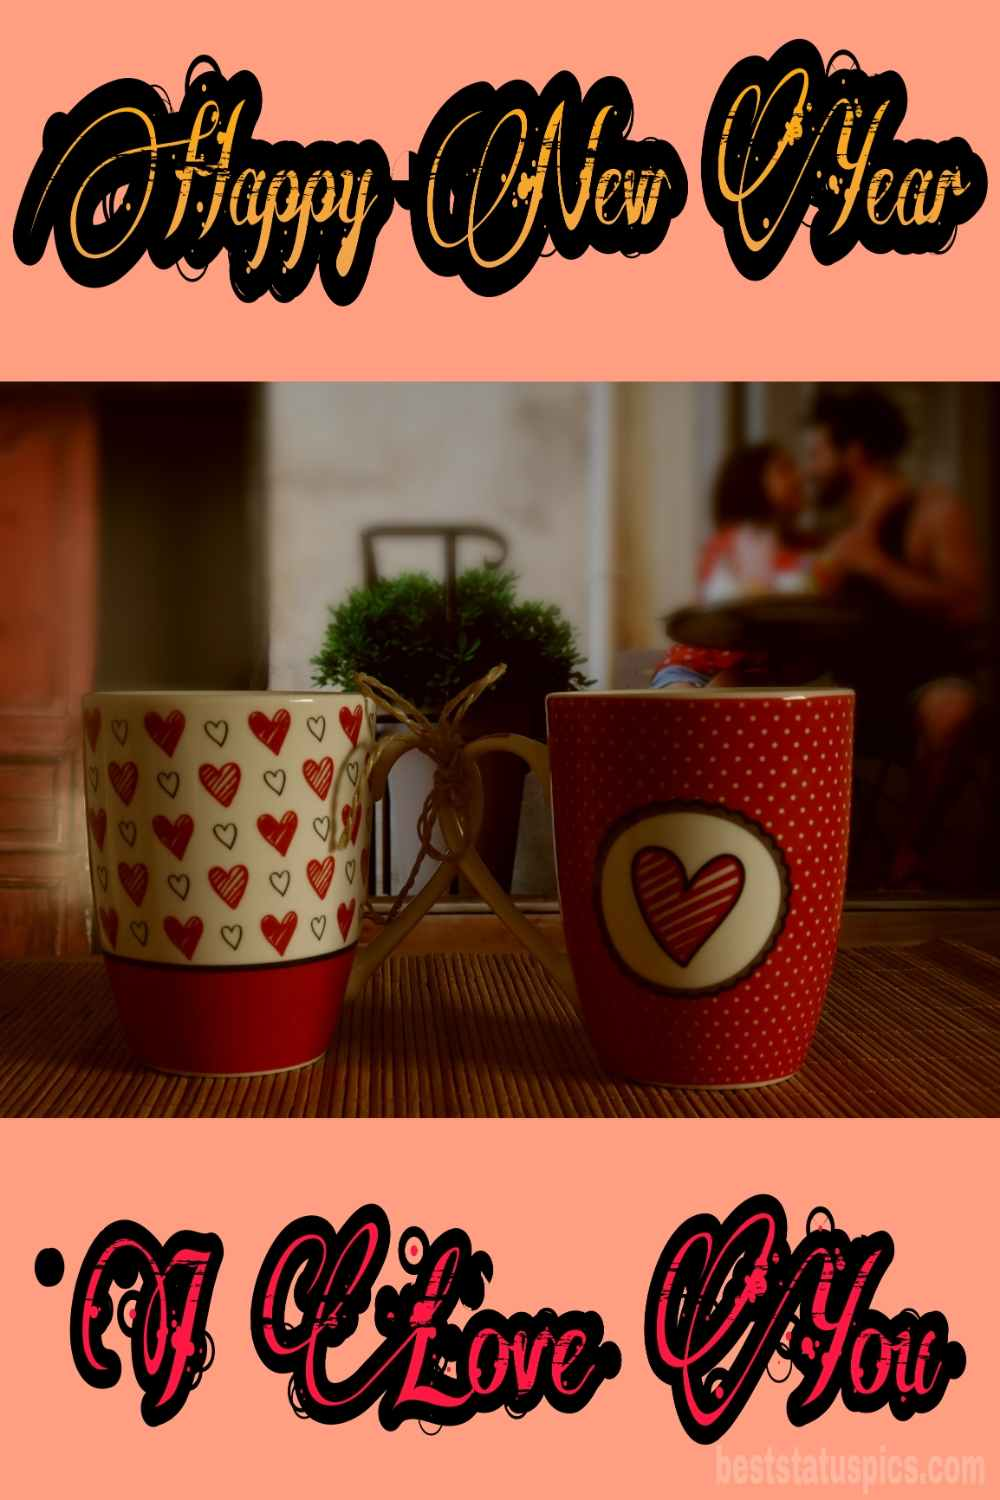 Happy new year 2022 and I love you wishes picture with coffee for couples